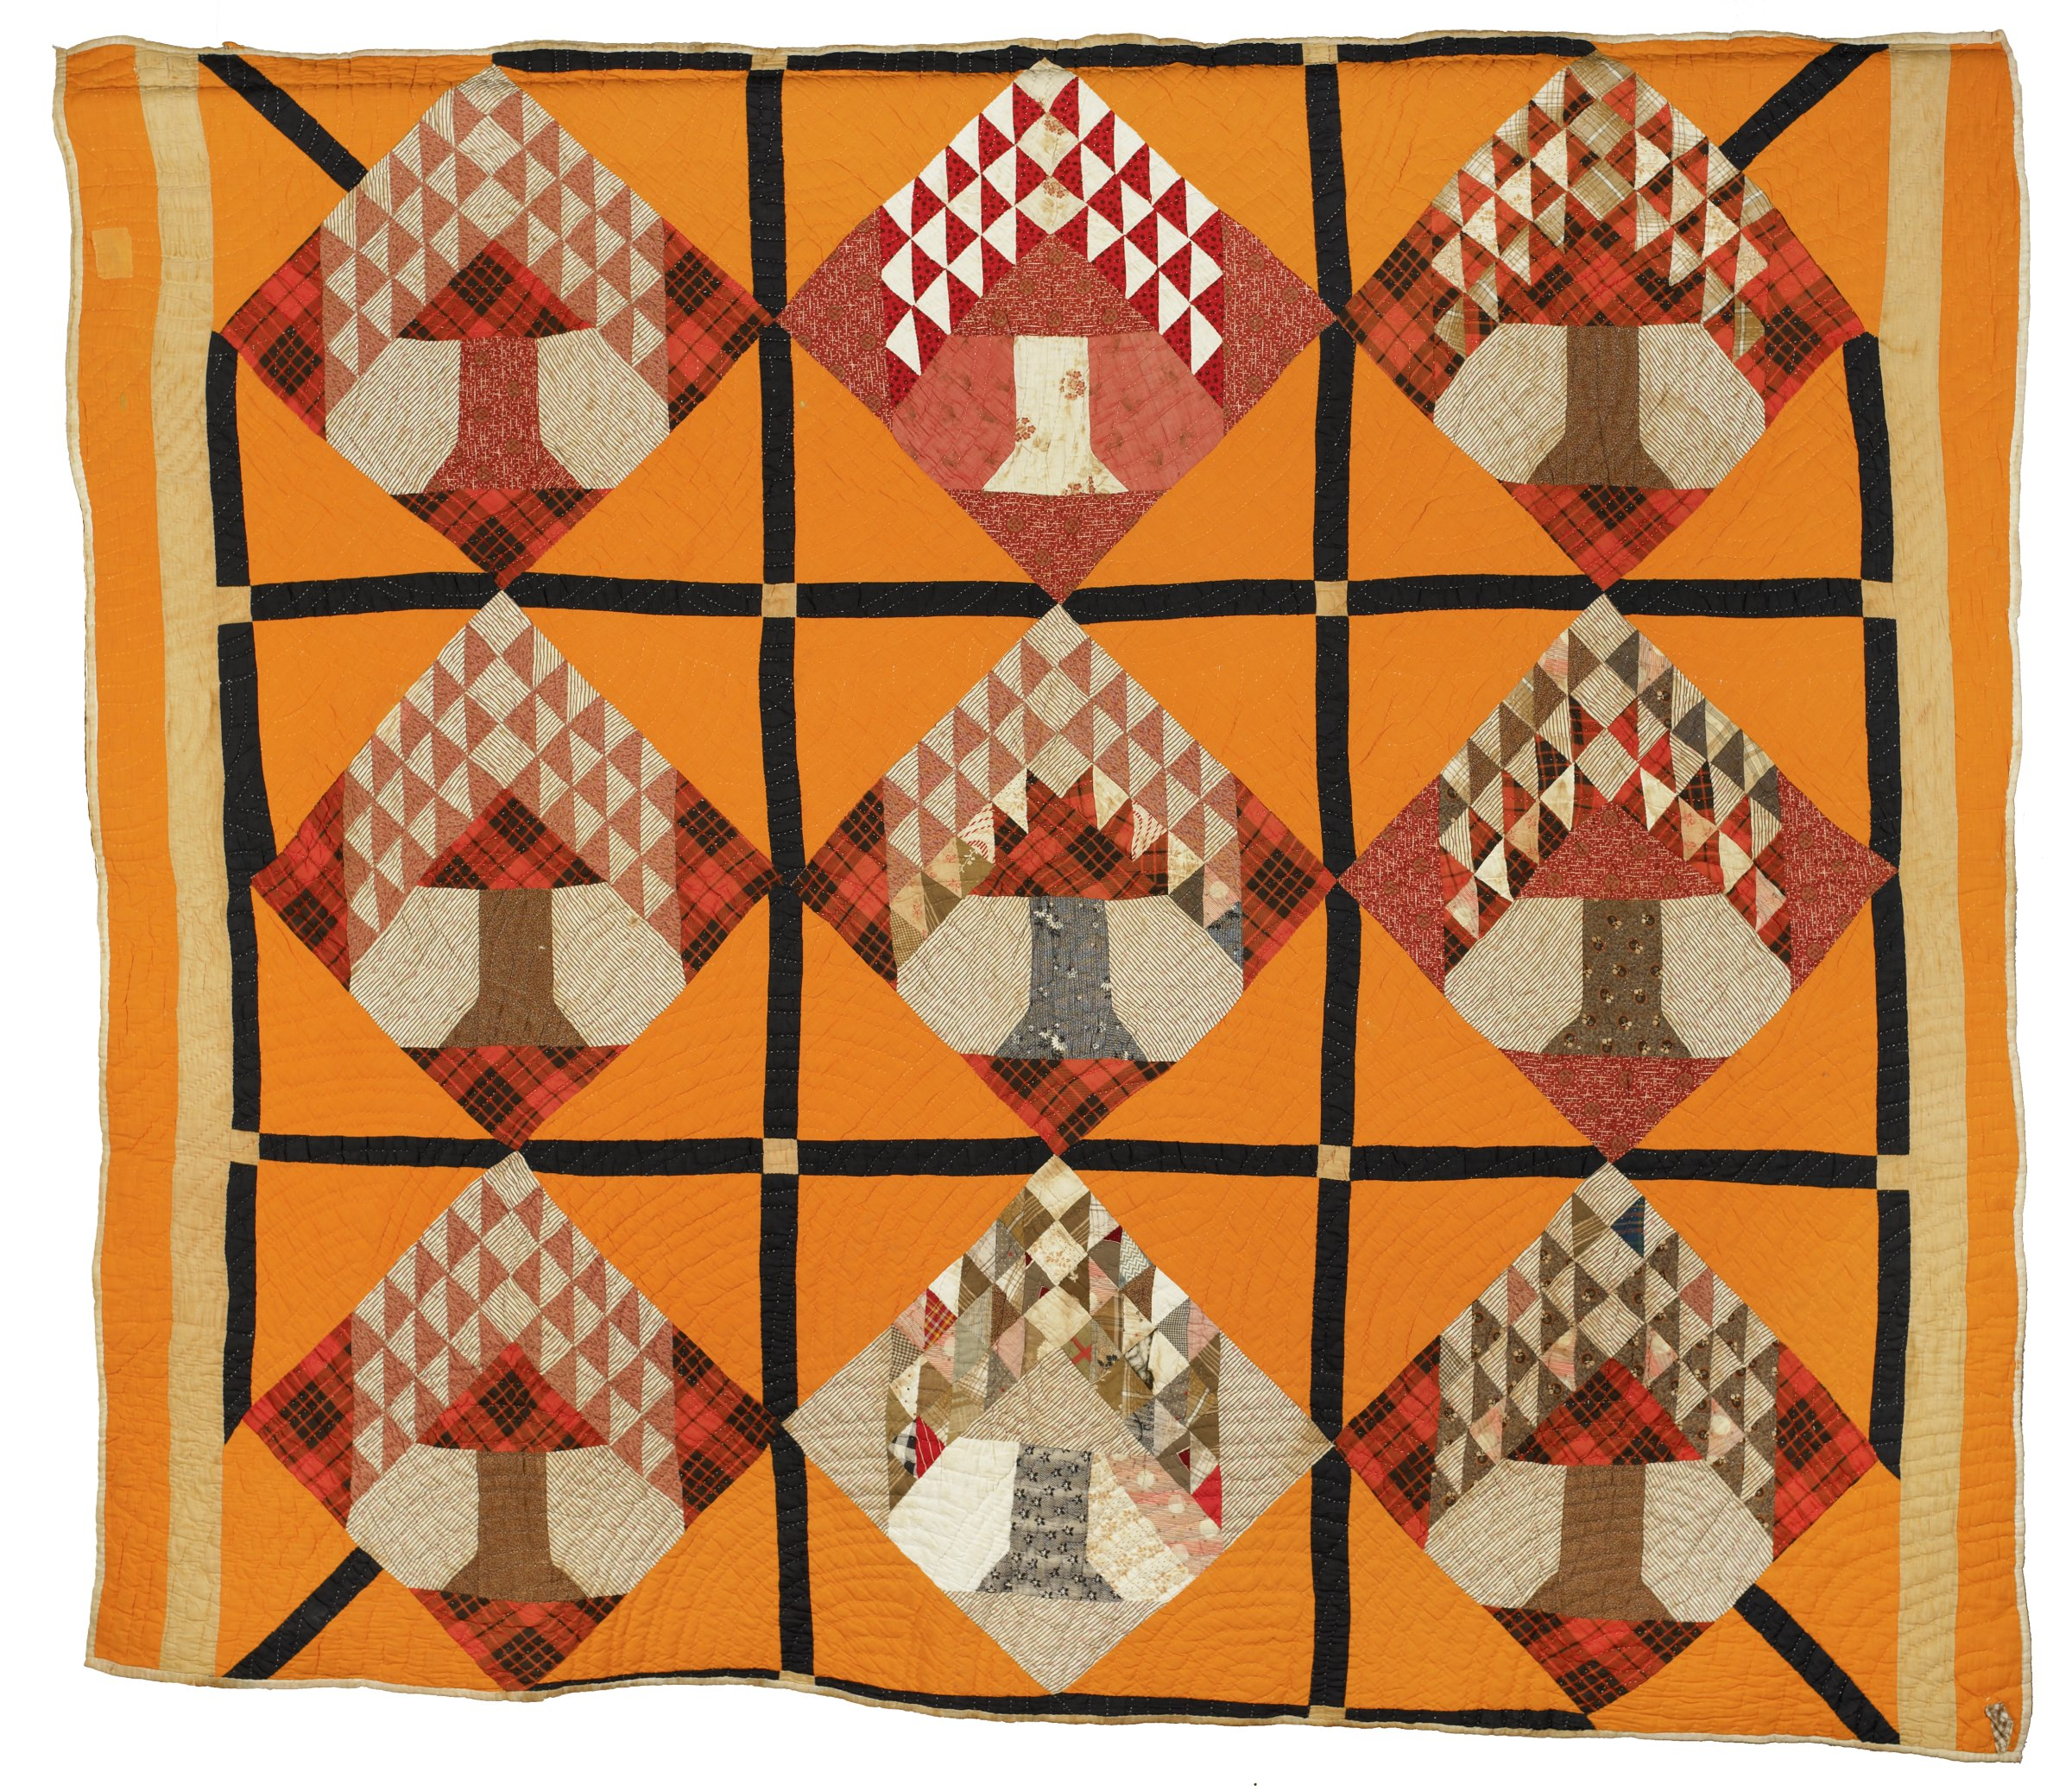 Large quilt in the Tree of Life, or Pine Tree, pattern comprised of a variety of printed and solid cottons forming a grid of nine blocks, each containing a diamond shape with a flowering tree inside it against an orange ground outlined by black strips, at each corner block a black strip extends directly from the corner to the diamond.